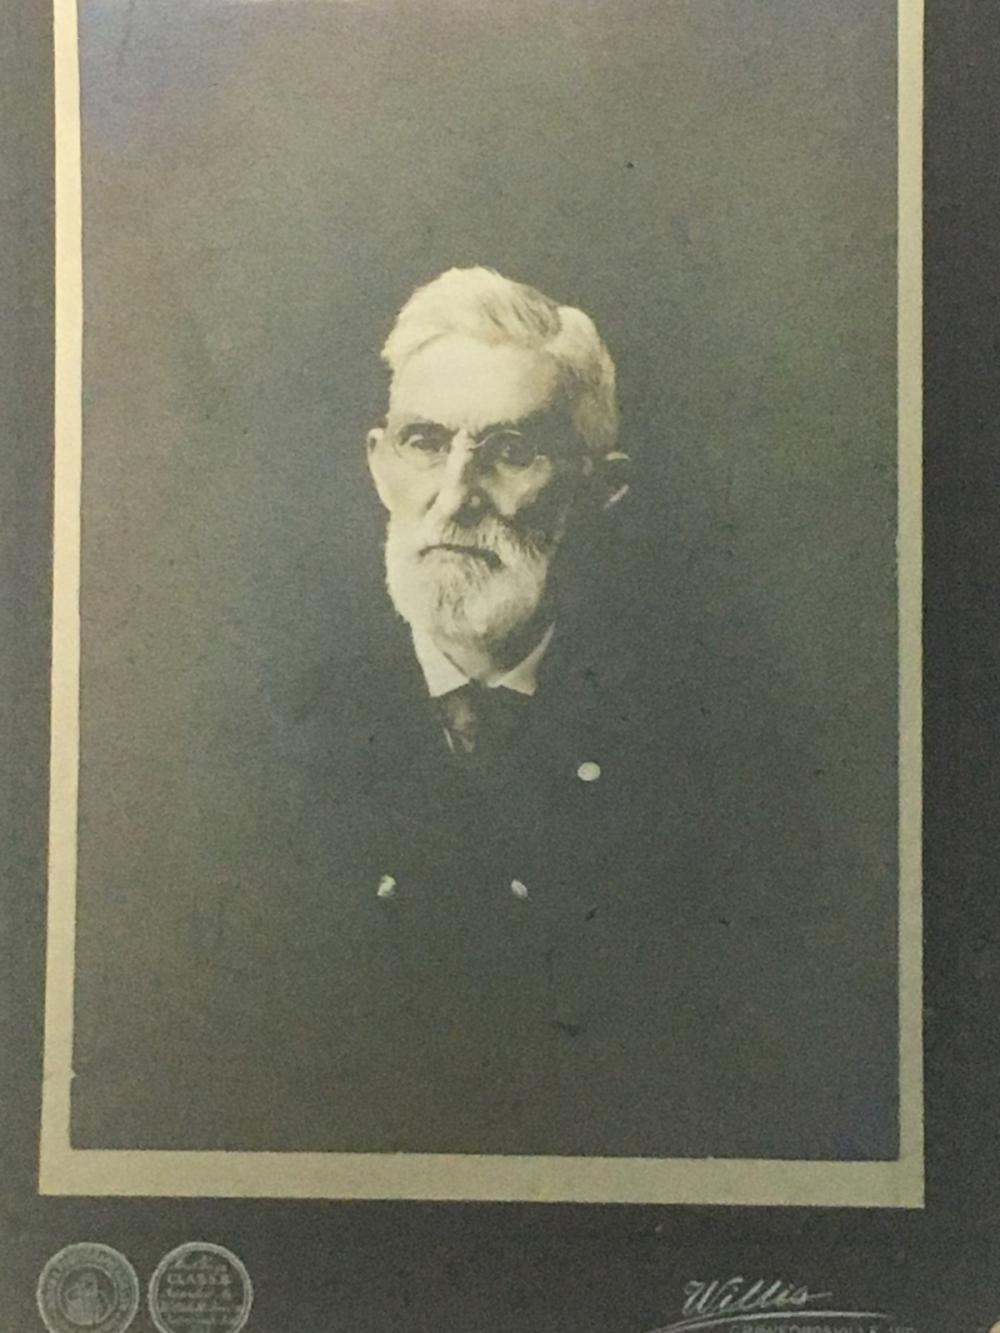 Signed photograph of Civil War Colonel Gifford, 93rd New York